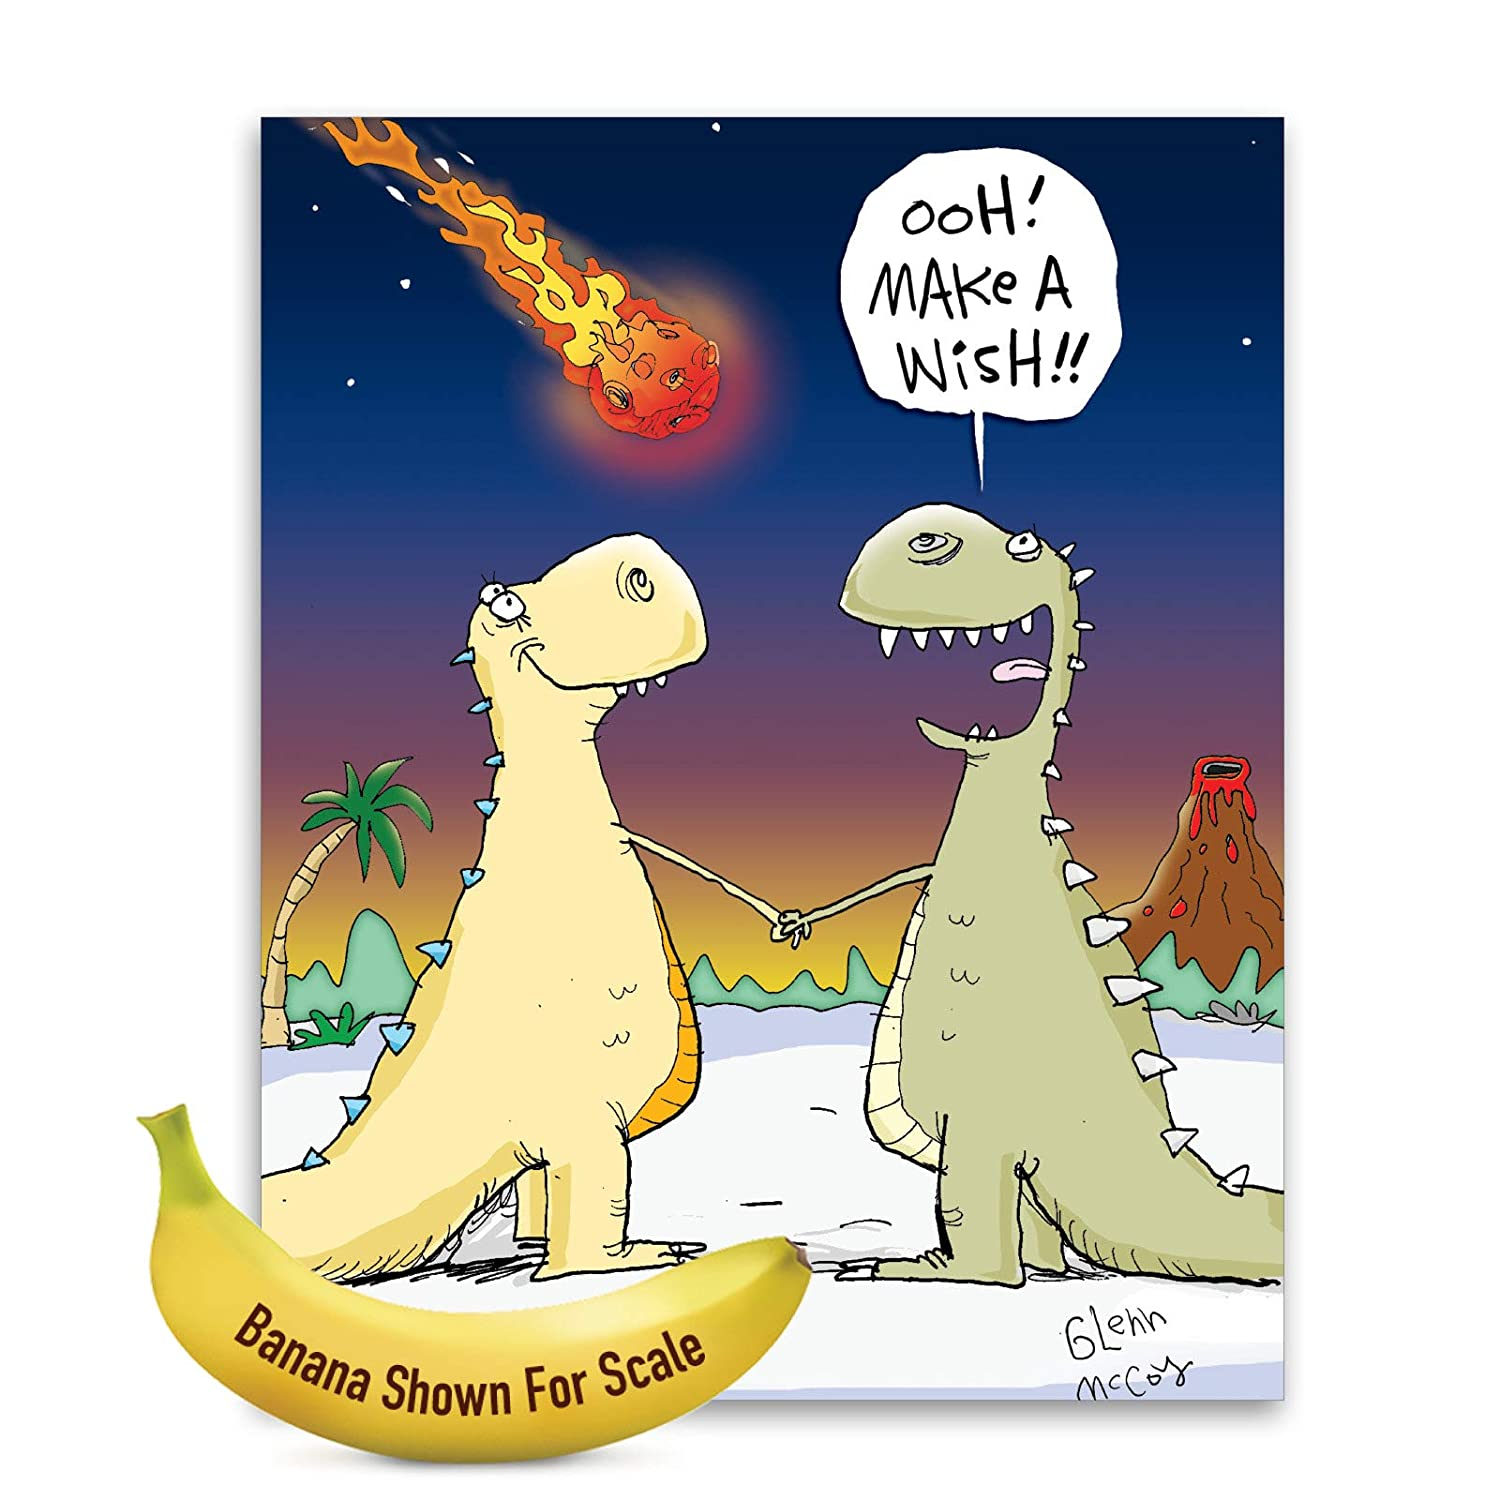 3 Pack of Jumbo - Make A Wish' Happy Birthday Greeting Card with Envelope  8.5 x 11 Inch - T-Rex Dinosaur Cartoon, Falling Star - Fun Jurassic Animal  ...